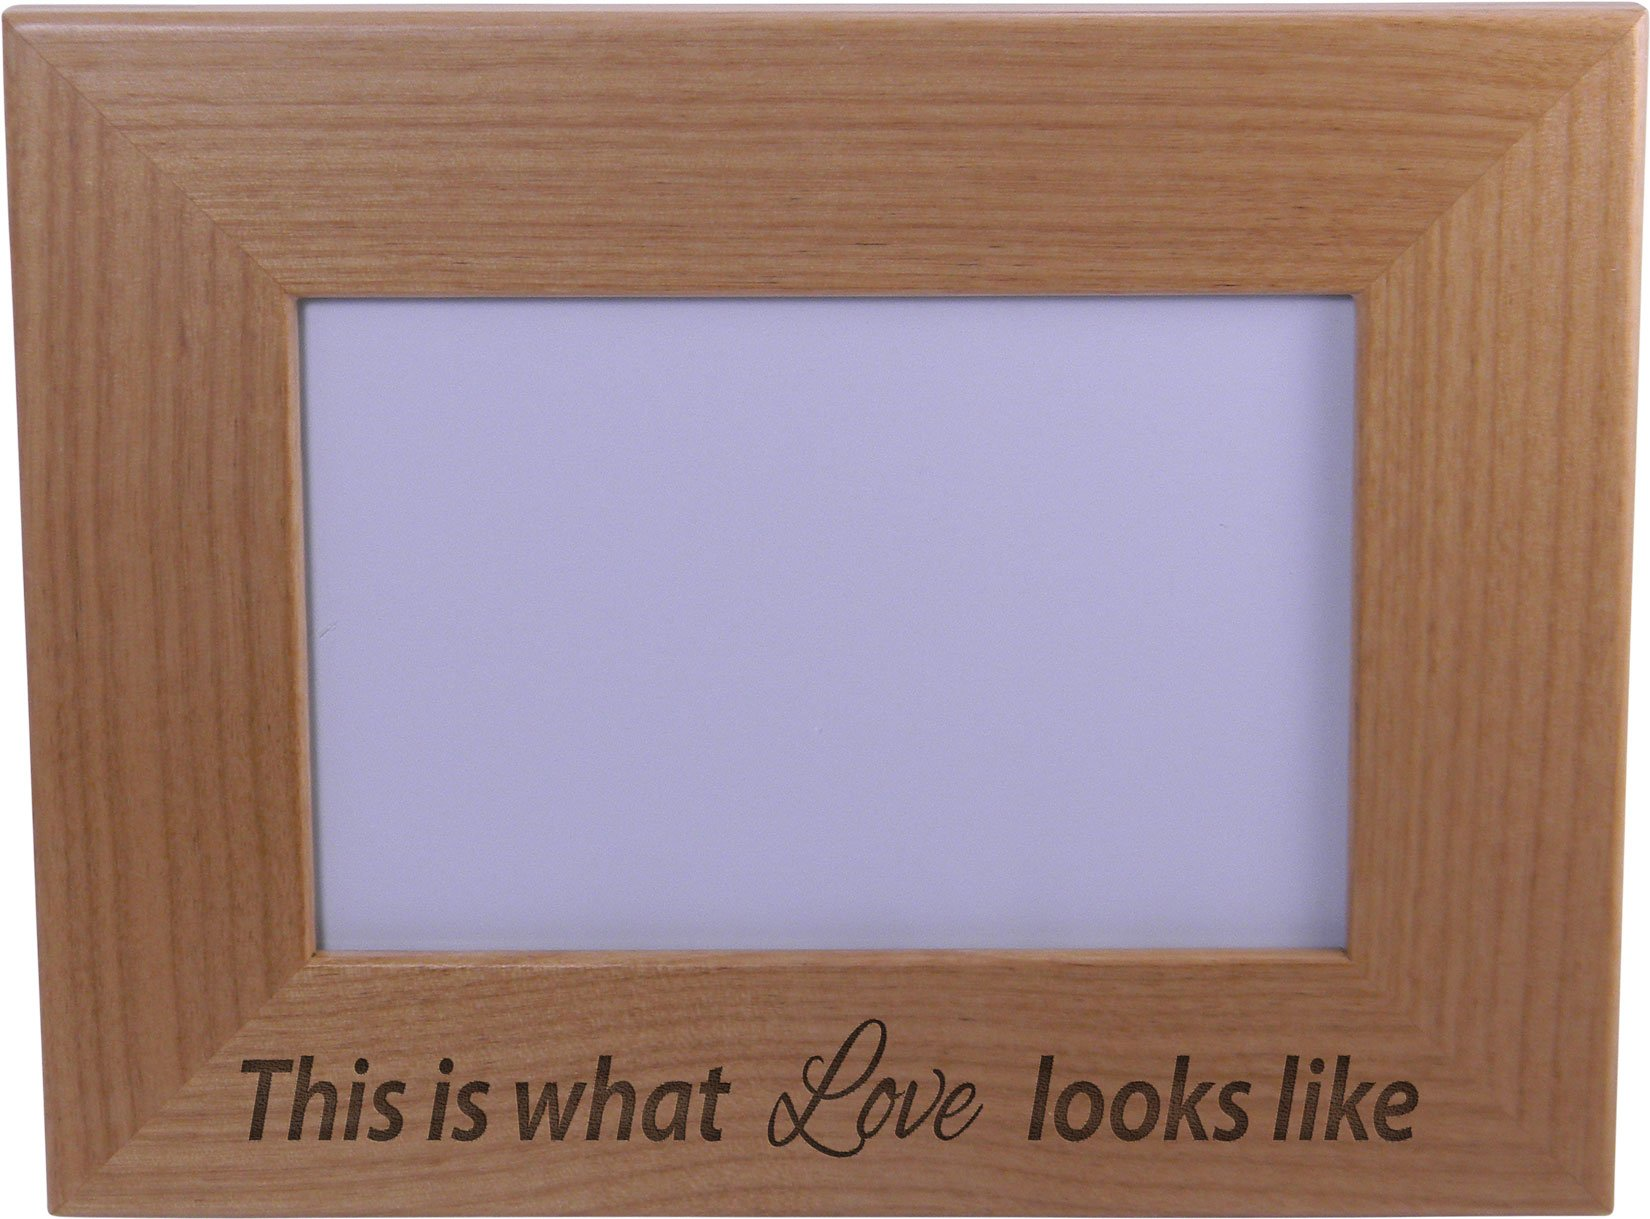 This is what love looks like - Wood Picture Frame Holds 4x6 Inch Photo - Great Gift for Mothers's, Father's Day, Birthday,Valentines Day, Anniversary or Christmas Gift